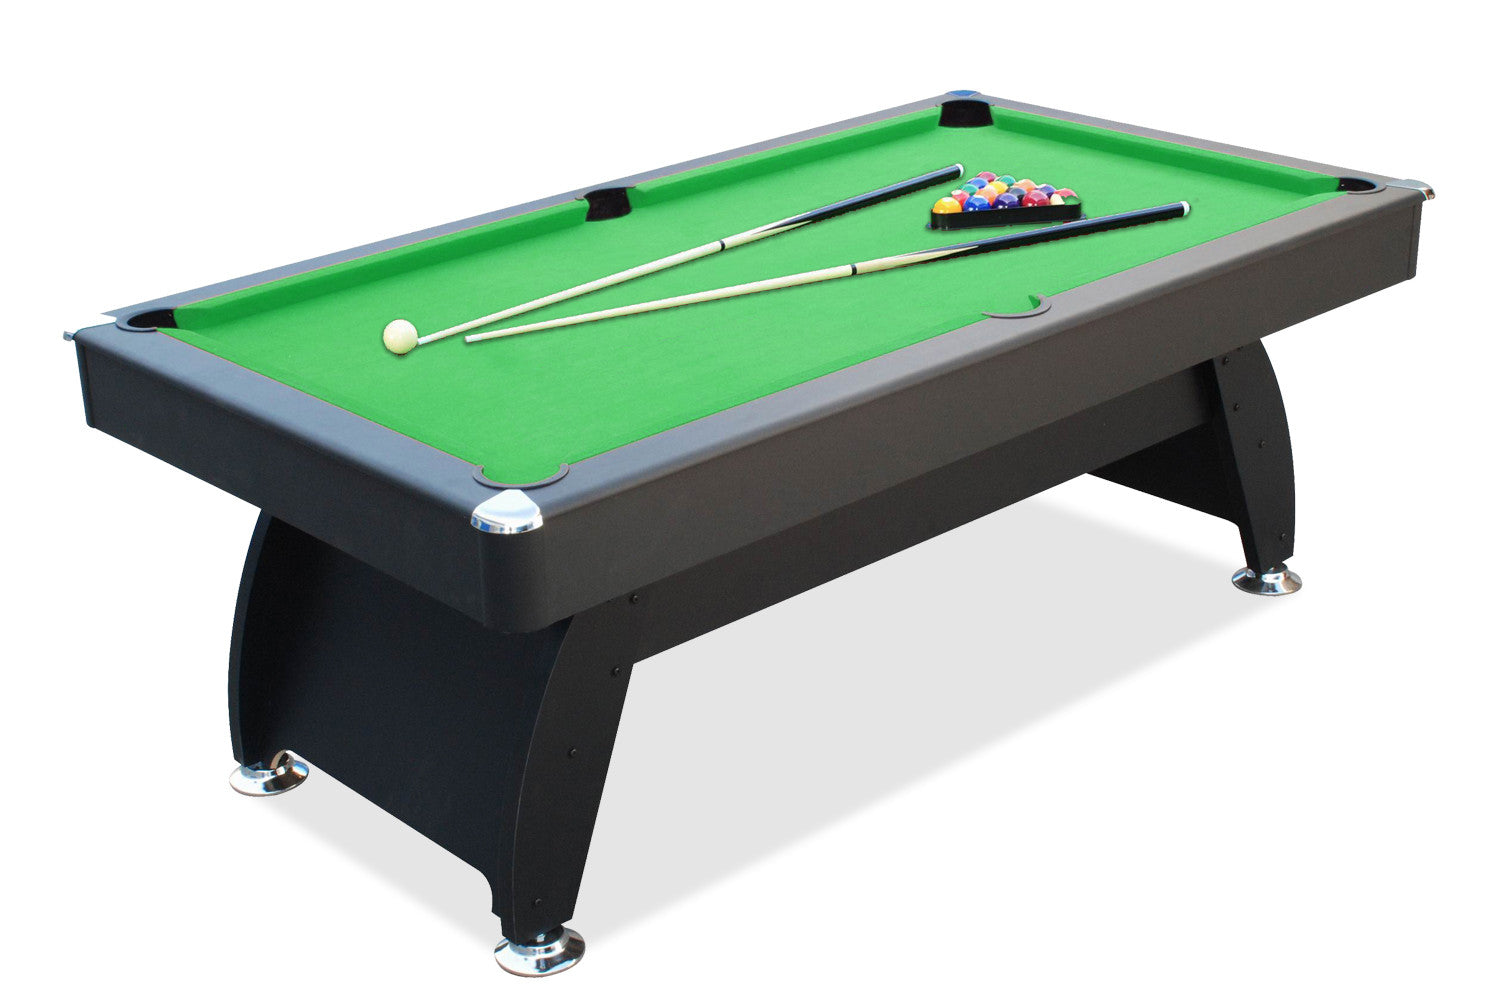 Dimension table de billard billard table billard toulet for Dimension queue de billard